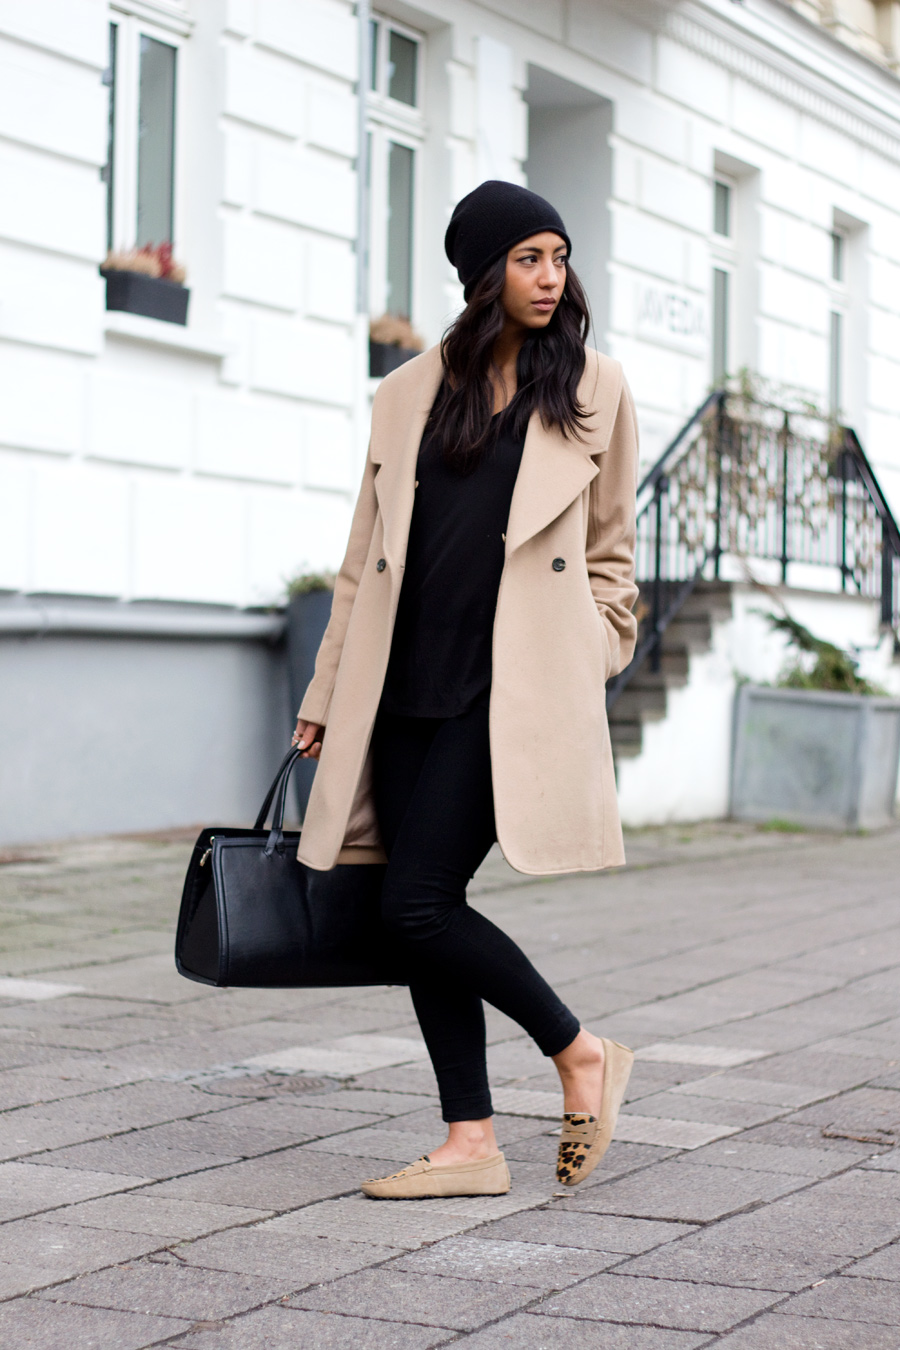 Camel And Black: Kayla Seah is wearing a camel coat from Club Monaco, black top from Alexander Wang, black jeans from J Brand, camel shoes from Bobbies Paris, black beanie from Cos and the bag is from Zara